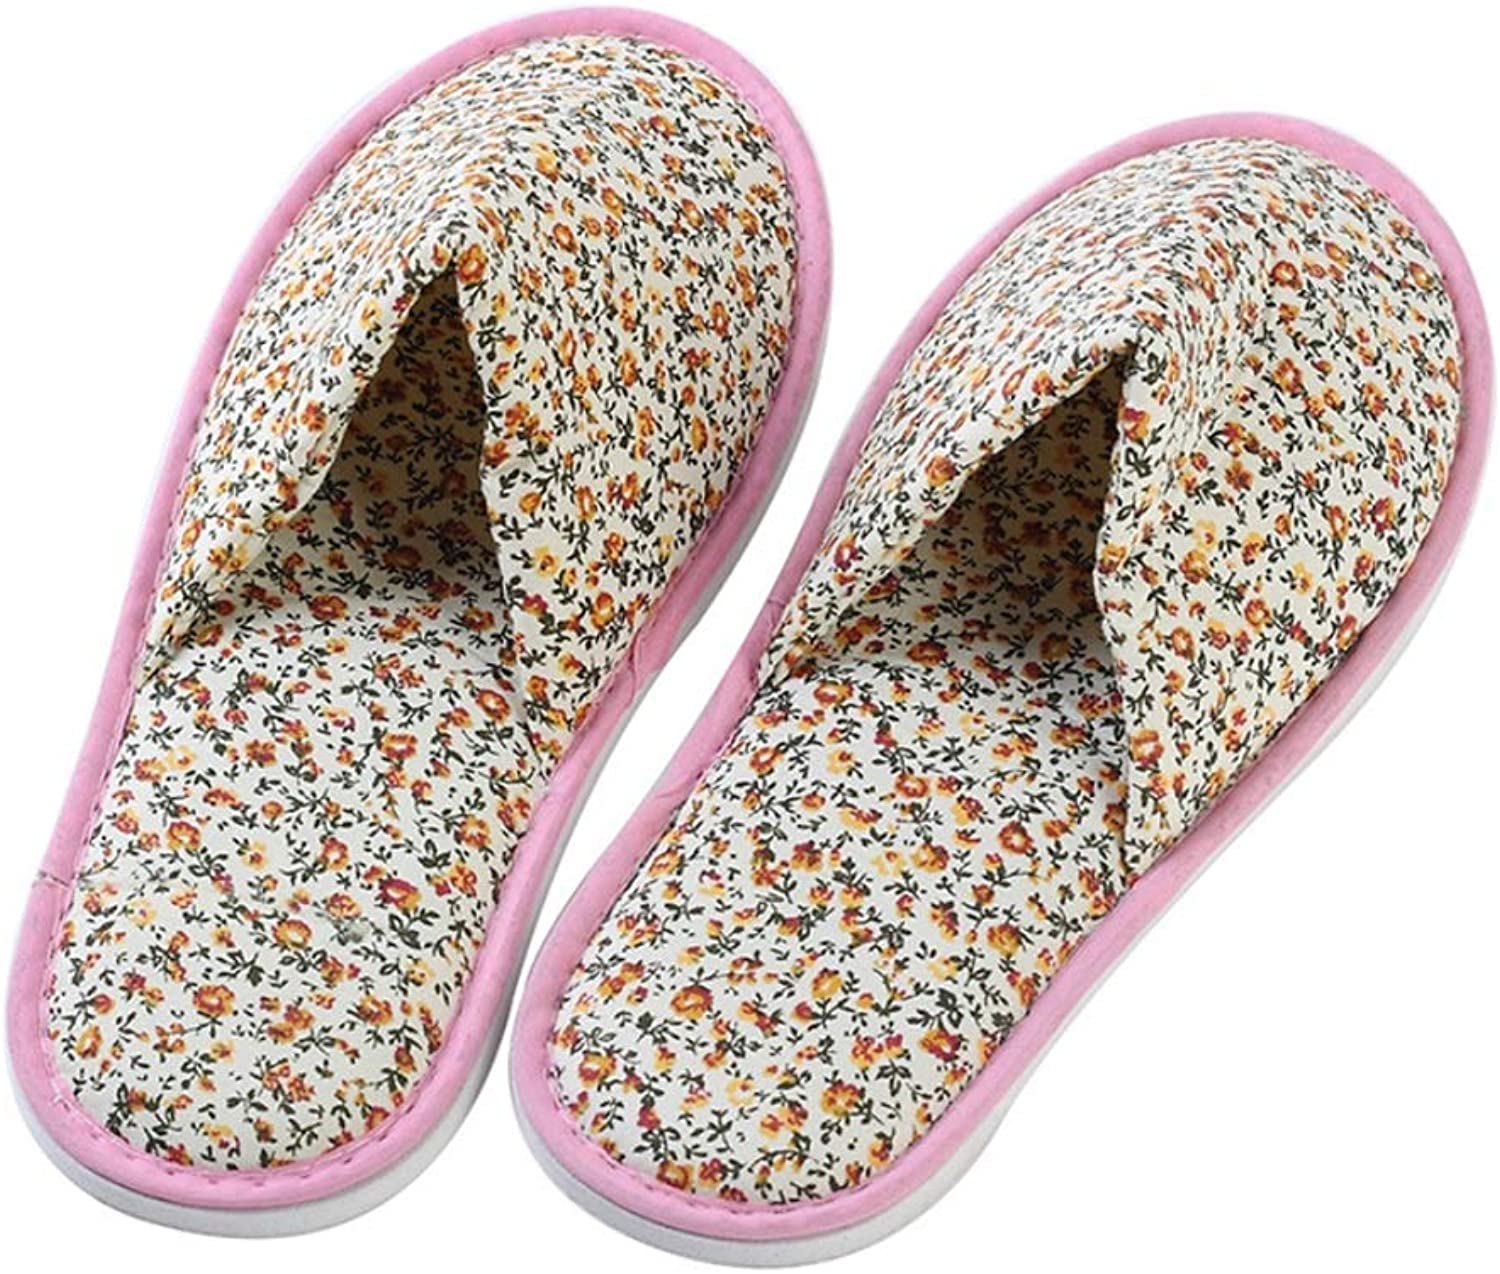 Slipper, Women's for Guests Disposable shoes Warm Indoor Small Floral Non-Slip One Size Comfortable Beauty Salon for Home Hotel